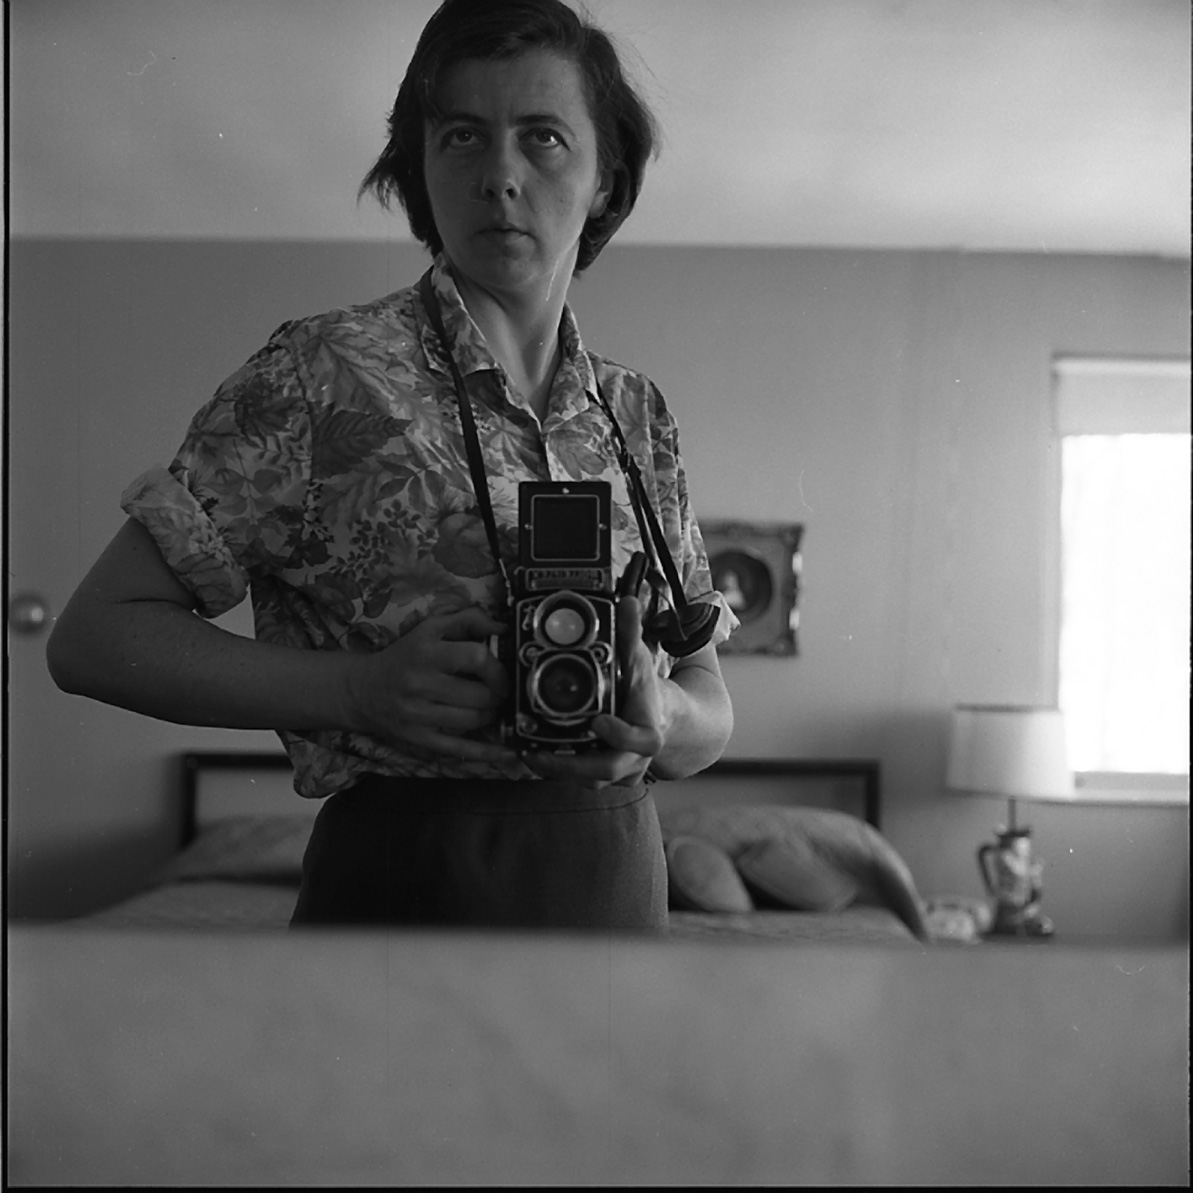 Vivian Maier, Self-Portrait, Bedroom Mirror, Highland Park, IL, January 1965